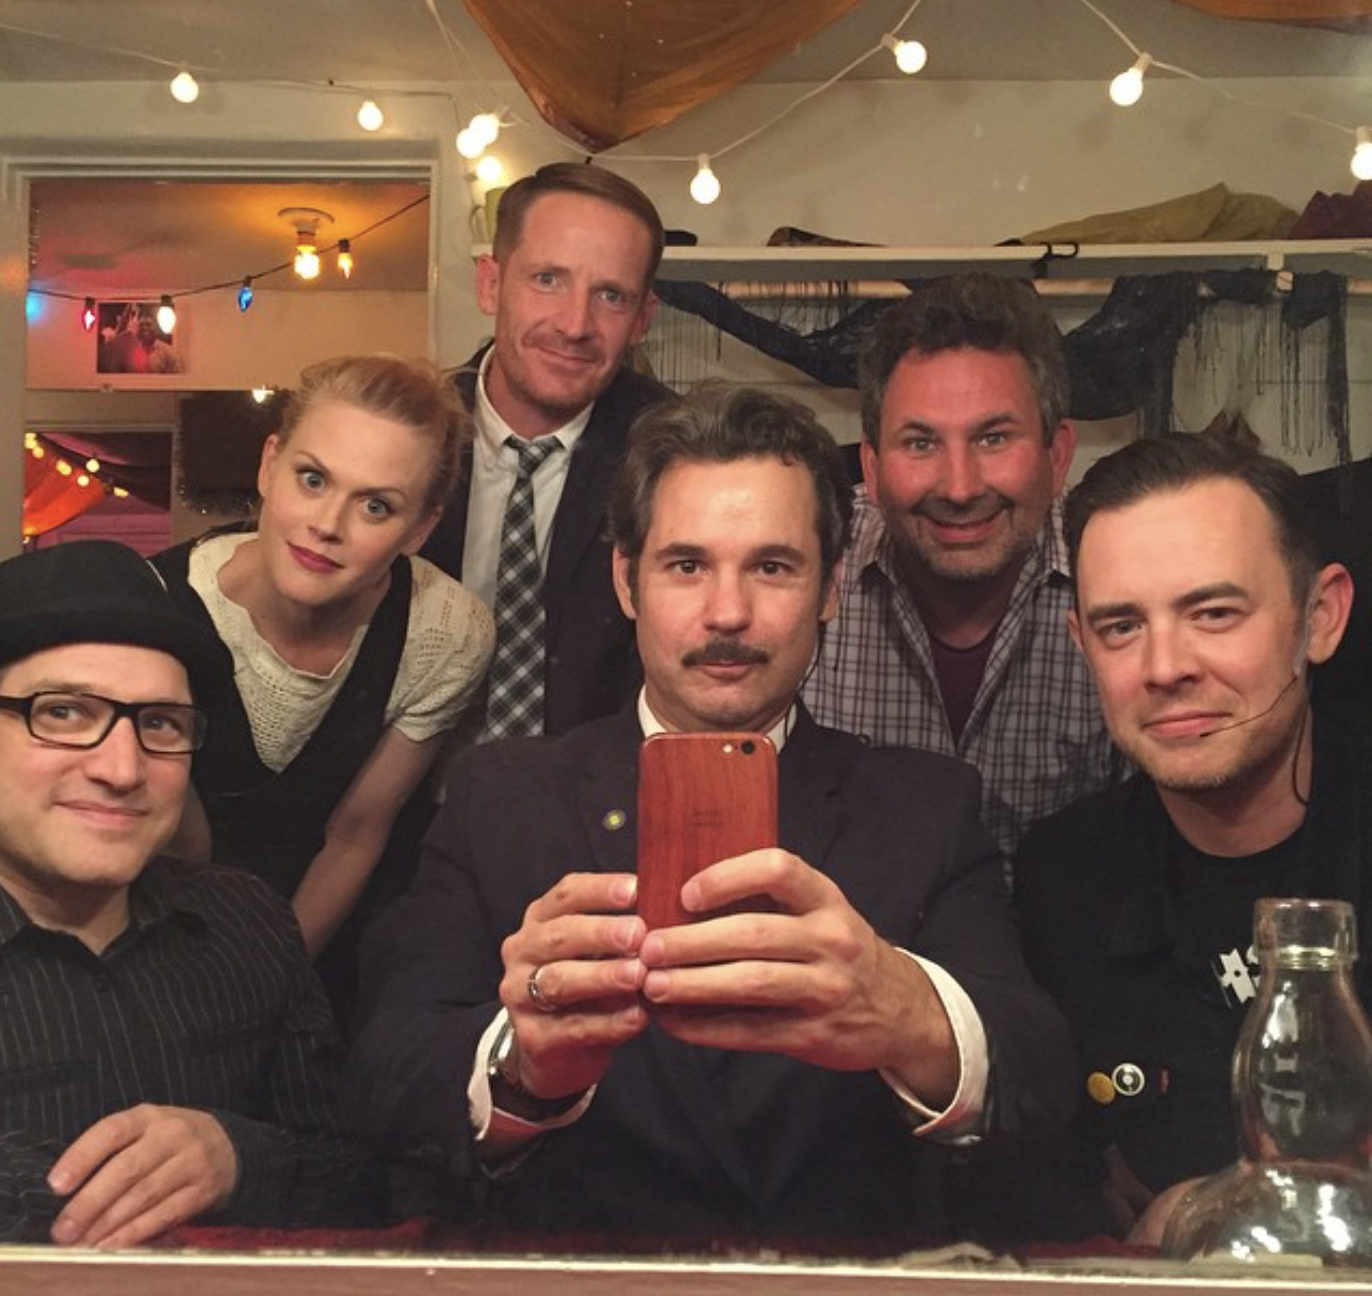 Spontaneanation with Paul F. Tompkins#13 A Dental Convention in Scottsdale, Arizona: Live from Largo(June 22nd, 2015) - Paul F. Tompkins welcomes Los Angeles AND the internet to the first LIVE episode of Spontaneanation recorded at the world-famous Largo at The Coronet!This time Paul's special guest is actor Colin Hanks of Orange County &Fargo! They chat about why Colin chose to wear the outfit he had on that night, feeling awkward at a fancy buffet inside Dodger's Stadium, and his personal high school uniform. Paul is then joined by Spomtaneanation all-stars Craig Cackowski, Marc Evan Jackson, and Janet Varney to improvise a story set at a Dental Convention in Scottsdale, Arizona (on the hottest day of the year). As always, the miraculous Eban Schletter scores it all on piano!